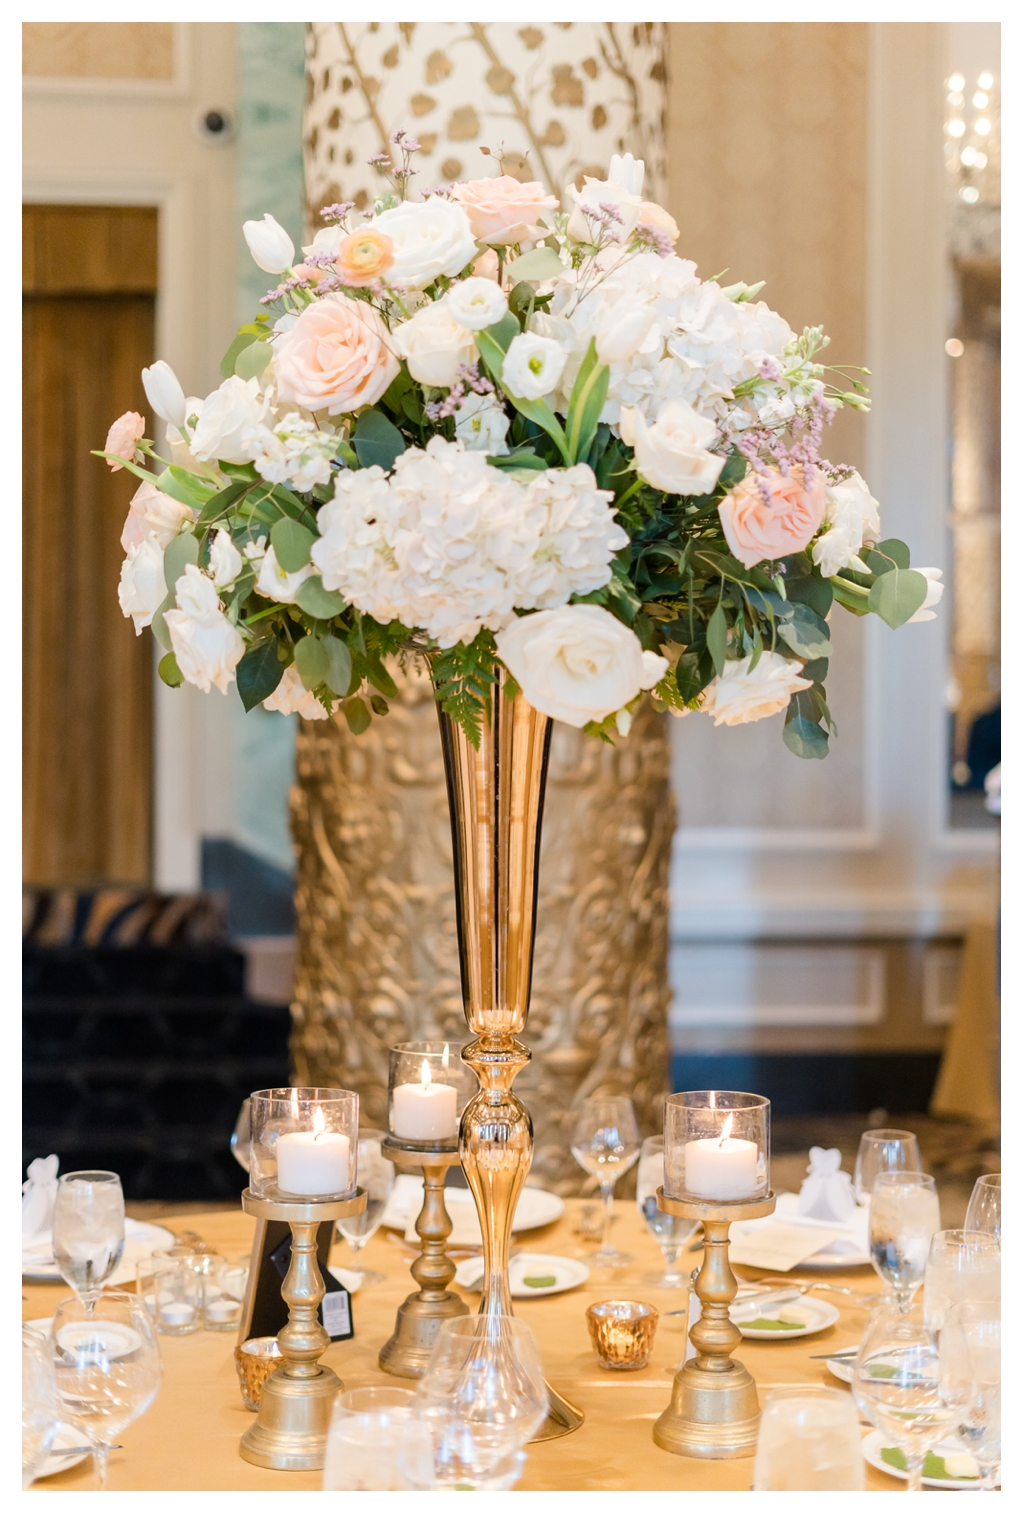 Classic Wedding Reception with Pink and White Flowers_0610.jpg